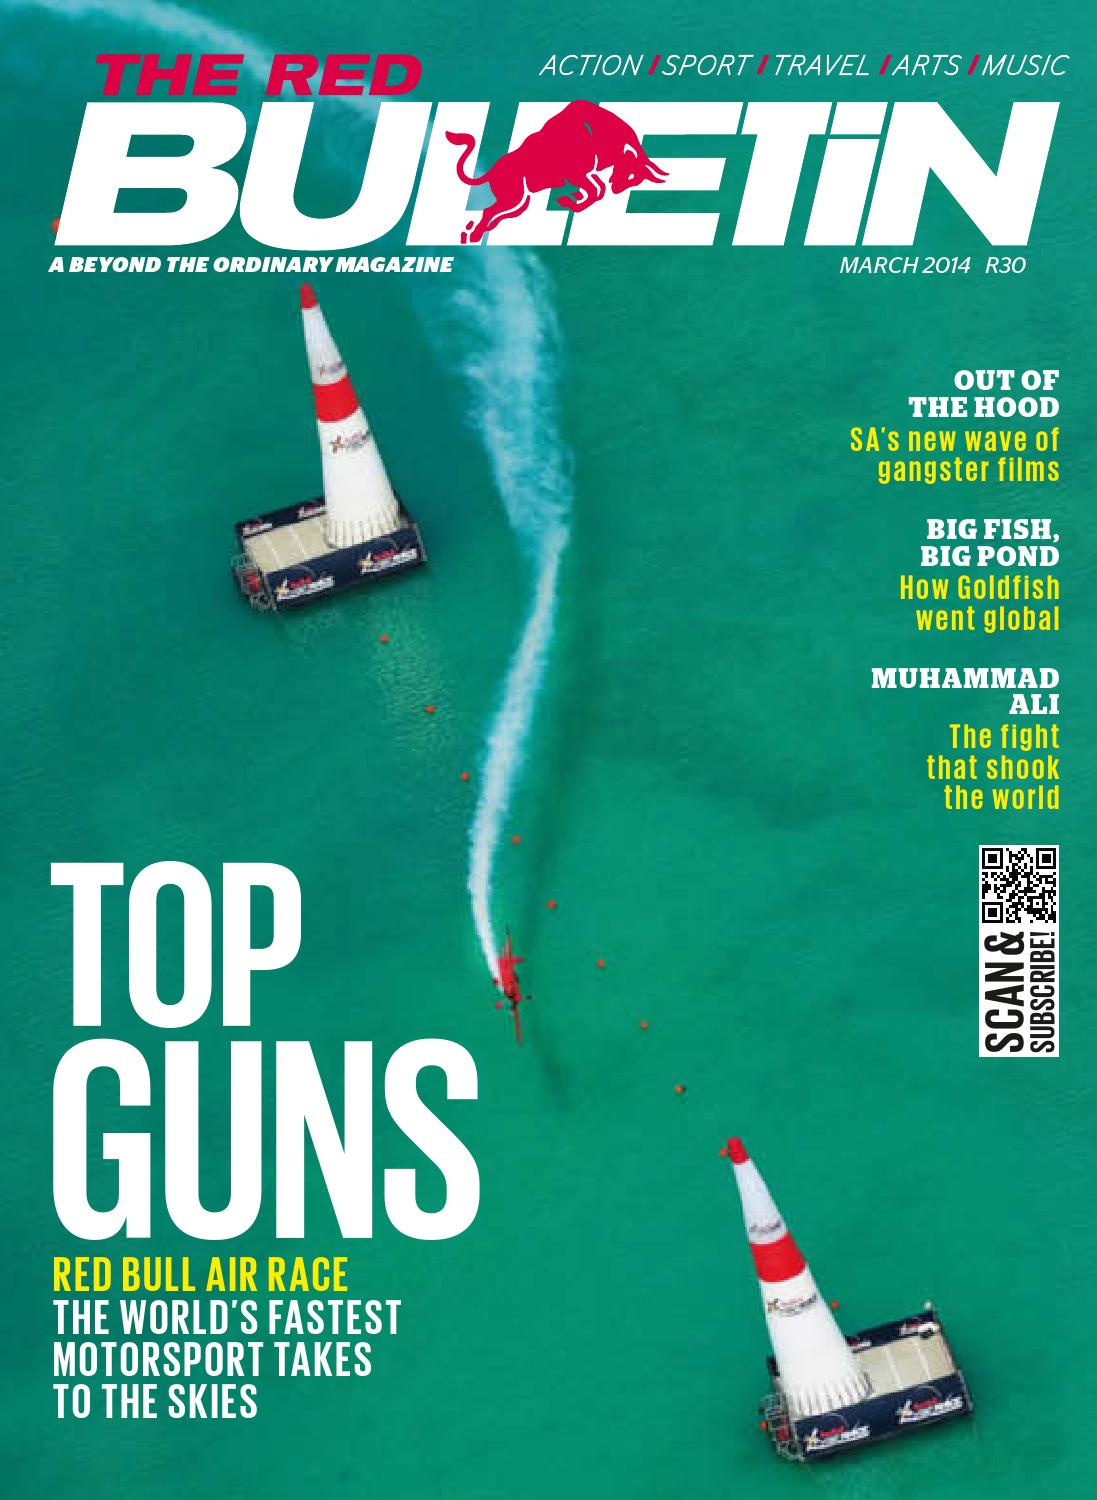 The Red Bulletin March 2014 Za By Red Bull Media House Issuu